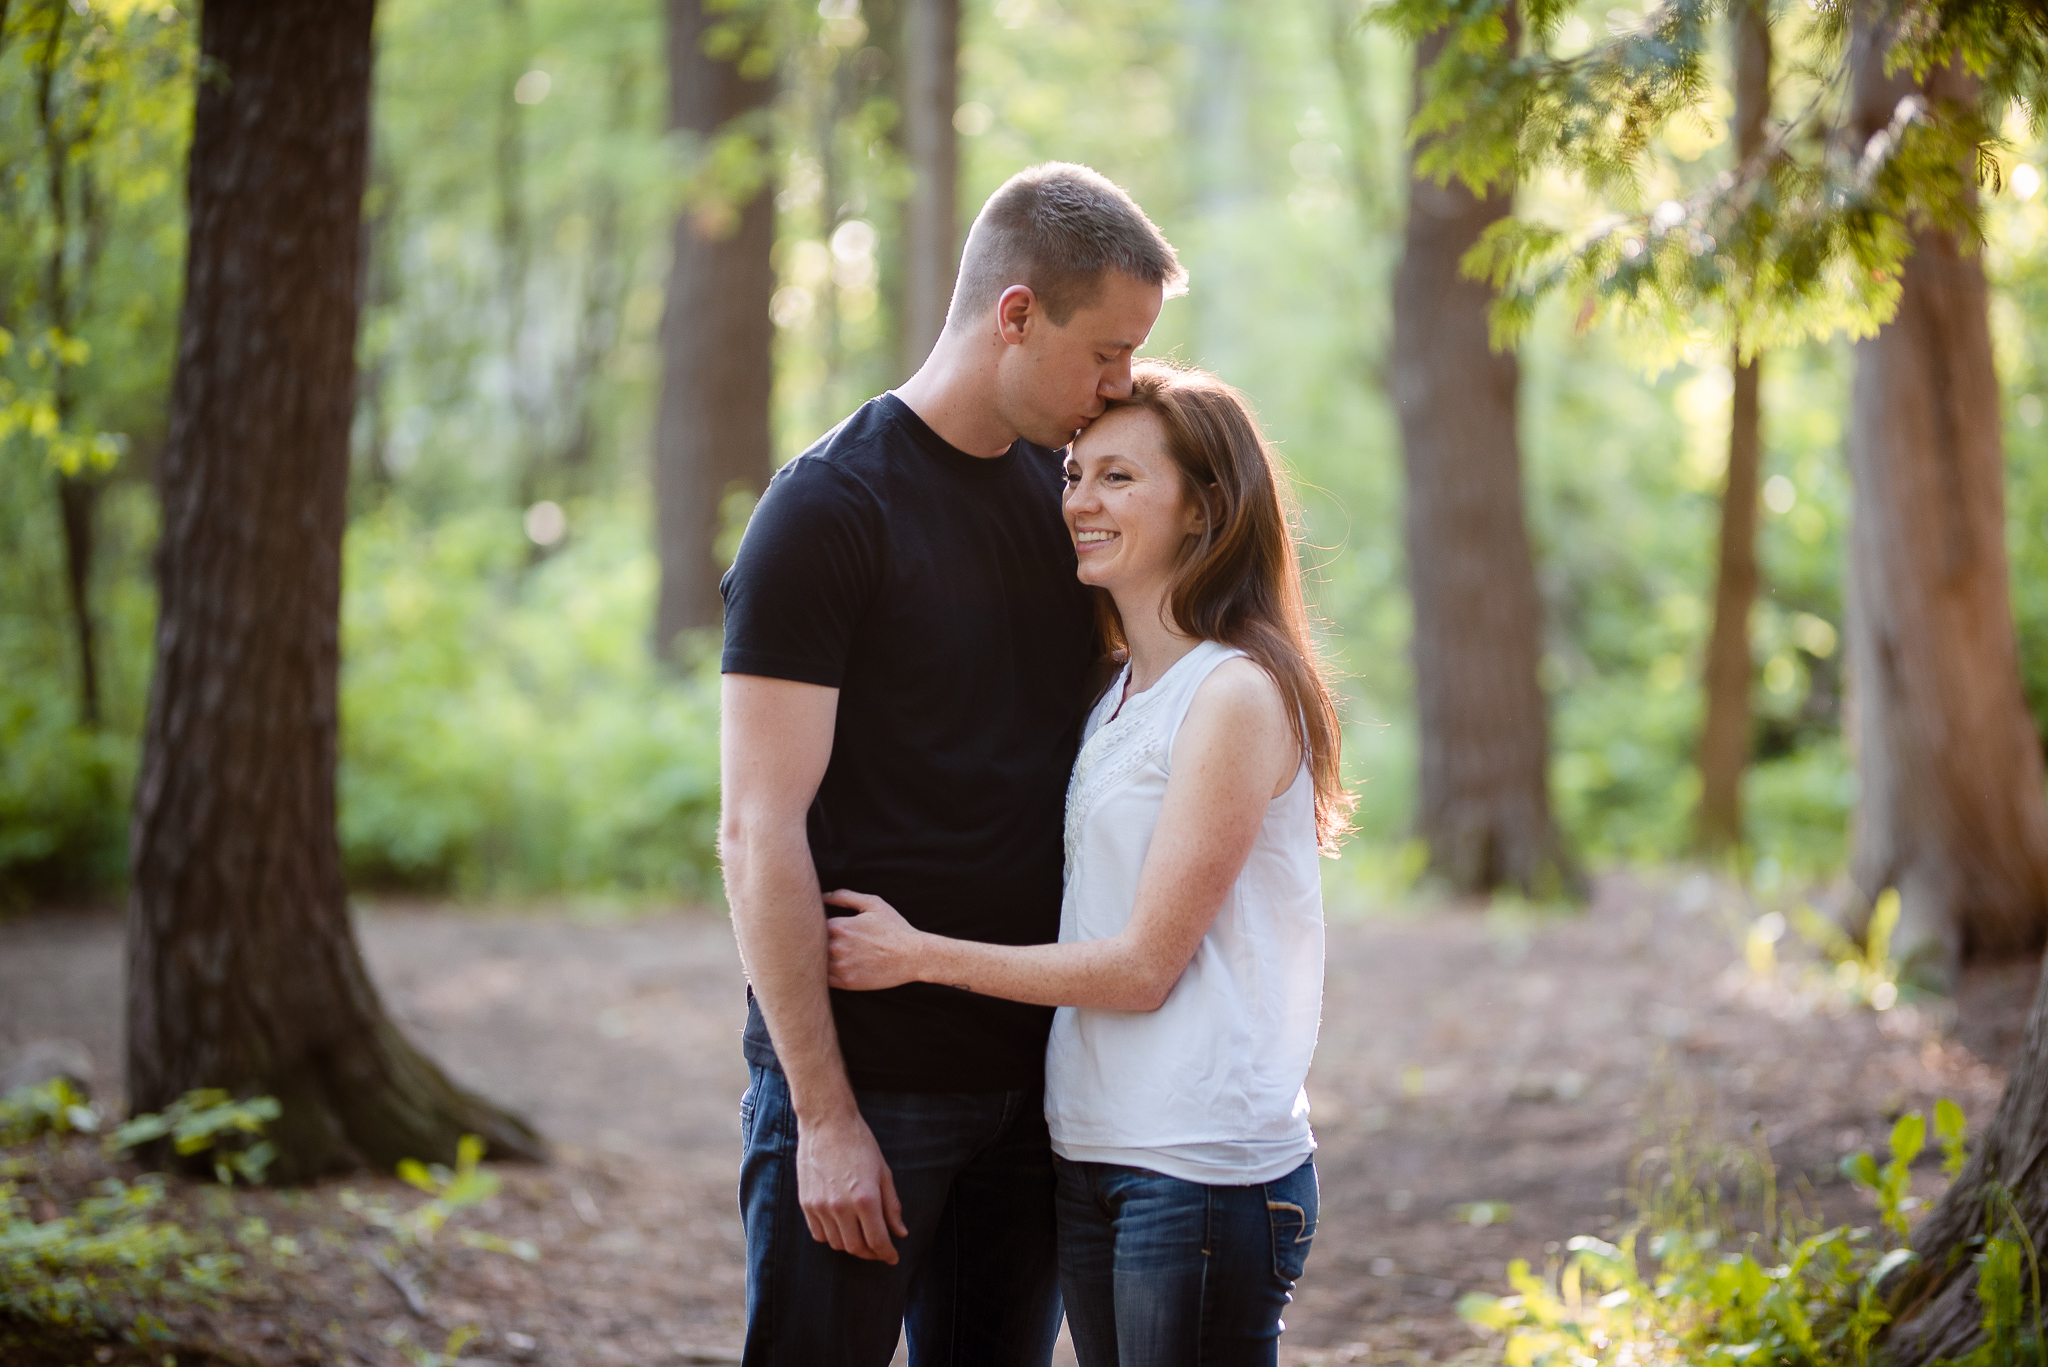 Couples76NaomiLuciennePhotography062019-5-Edit.jpg